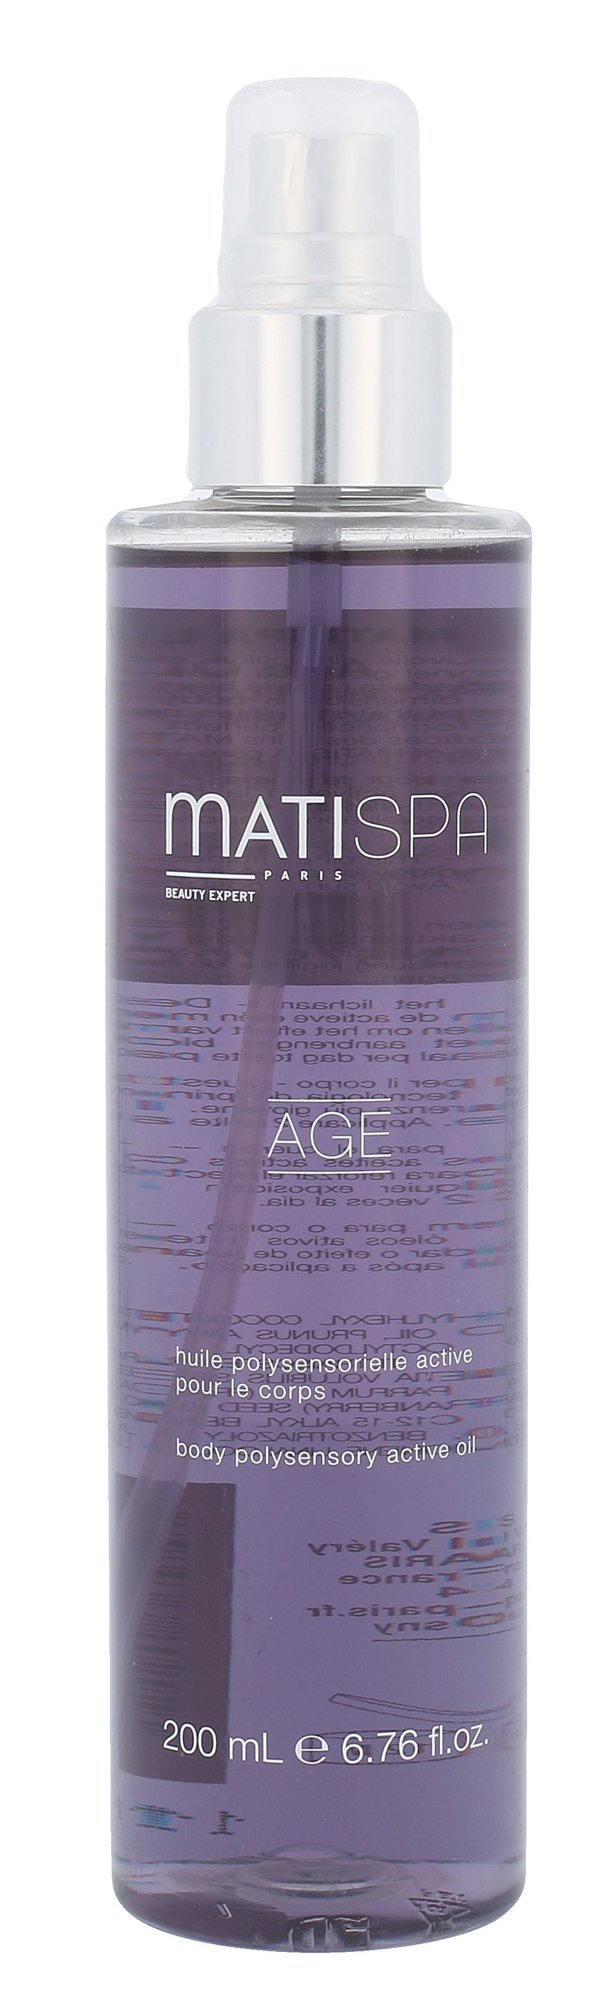 Matis Matispa Age Cosmetic 200ml  Body Polysensory Active Oil